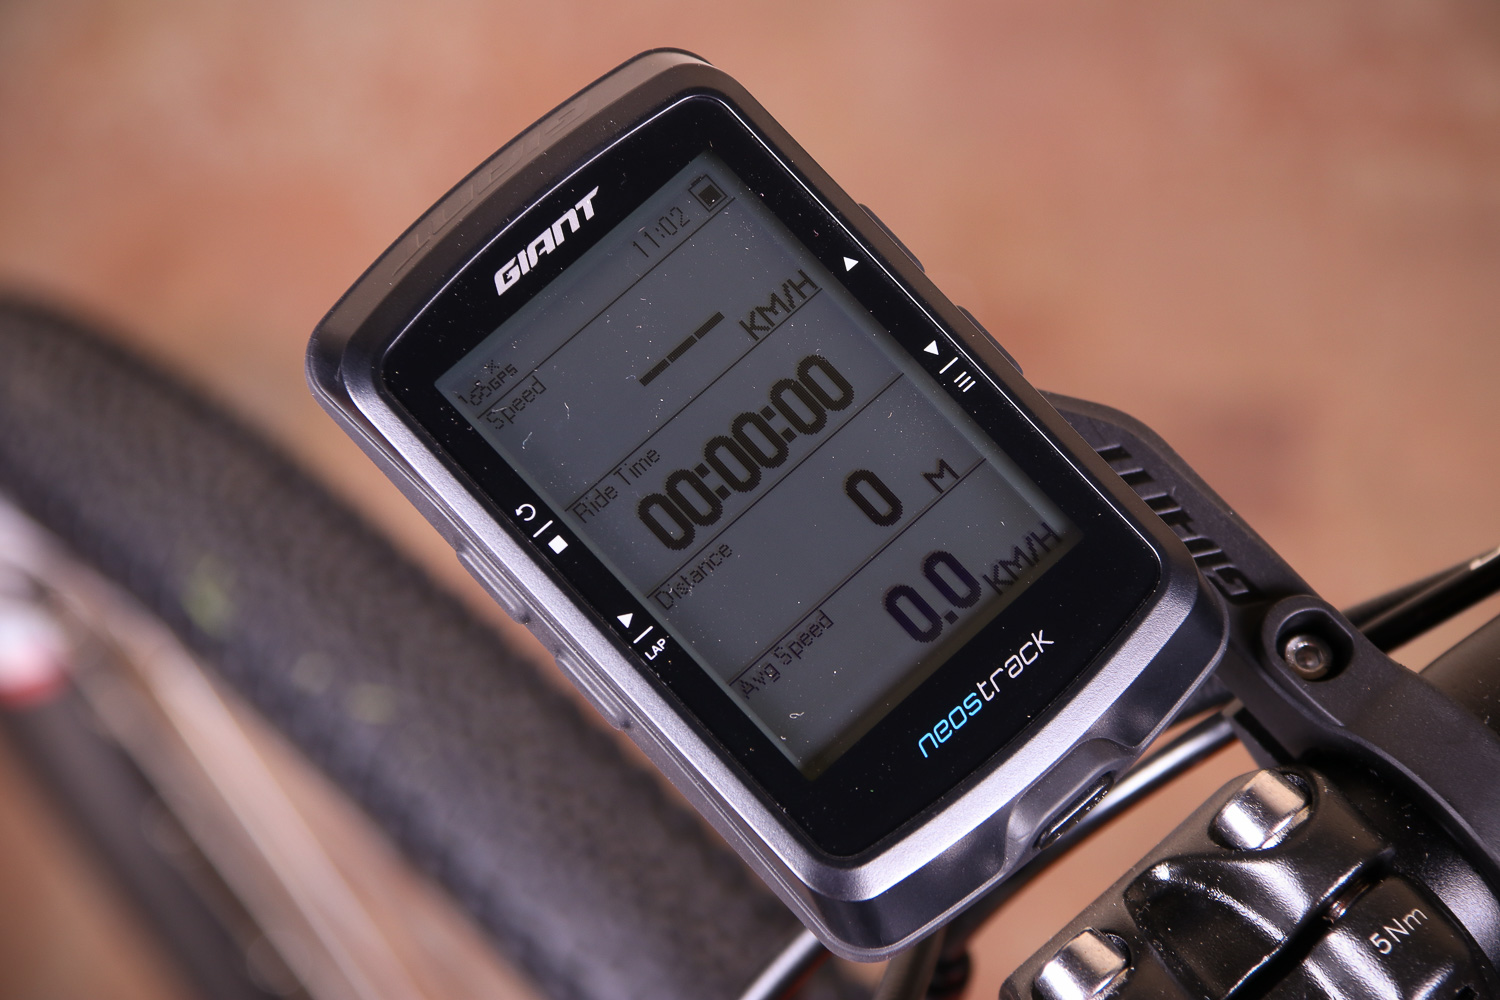 Review: Giant NeosTrack GPS Computer | road cc